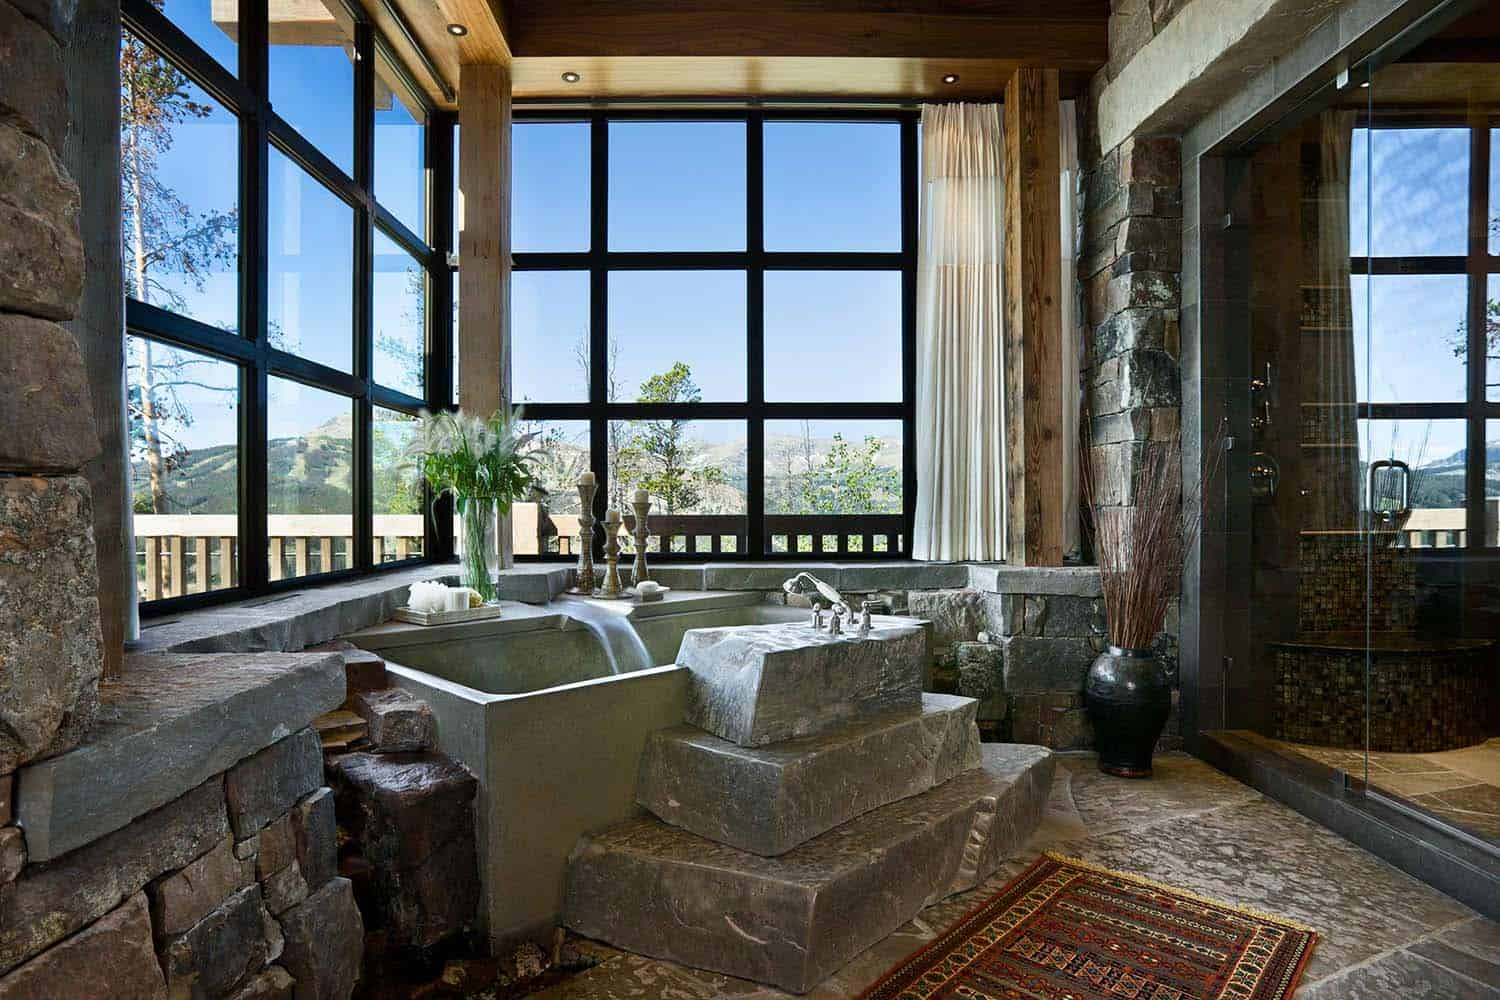 residence-rustic-bathroom